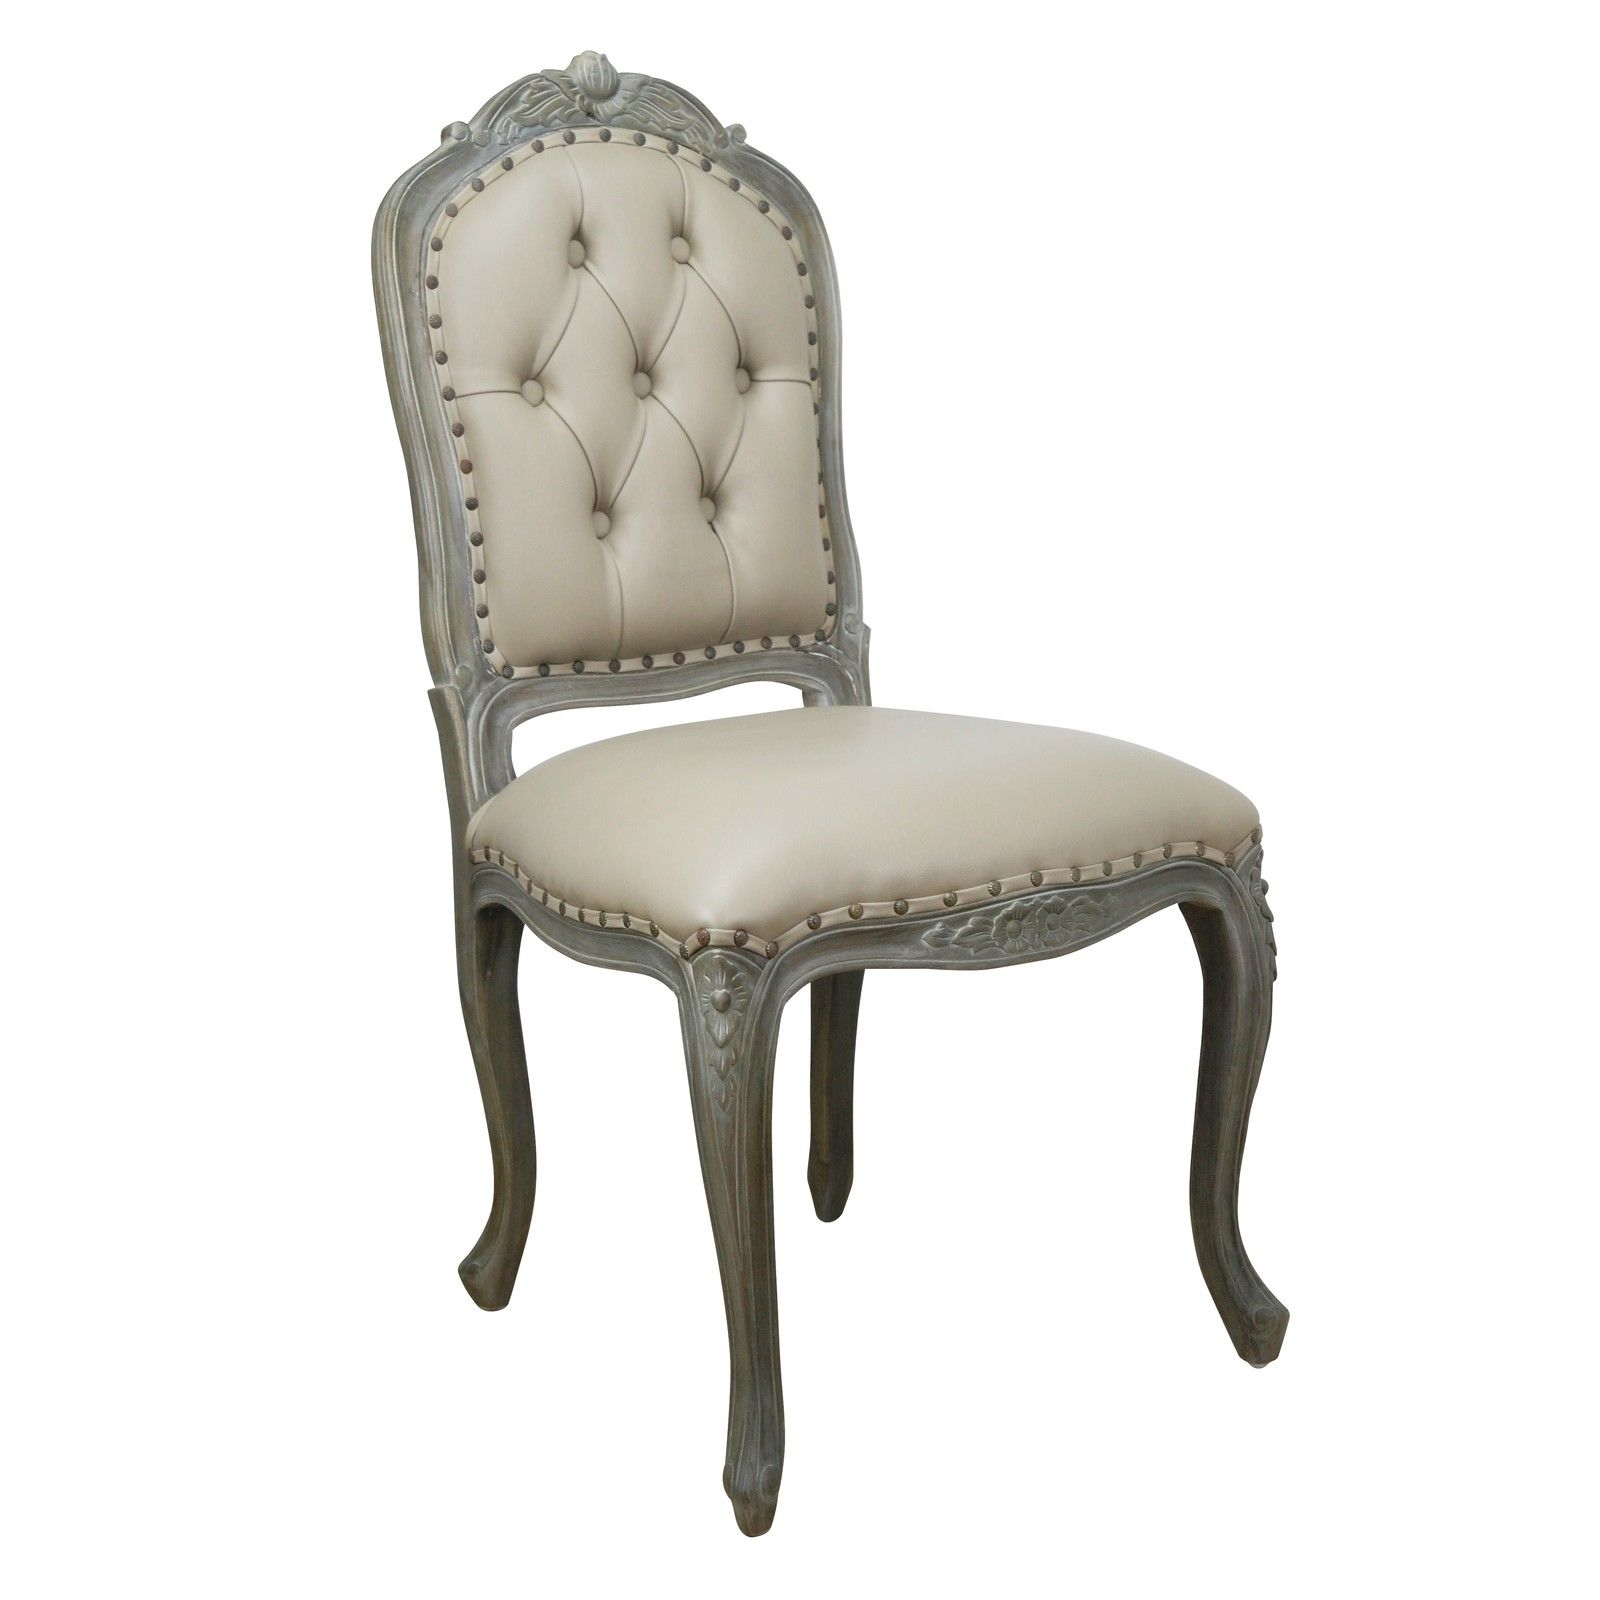 Studded Dining Chair with Faux Leather